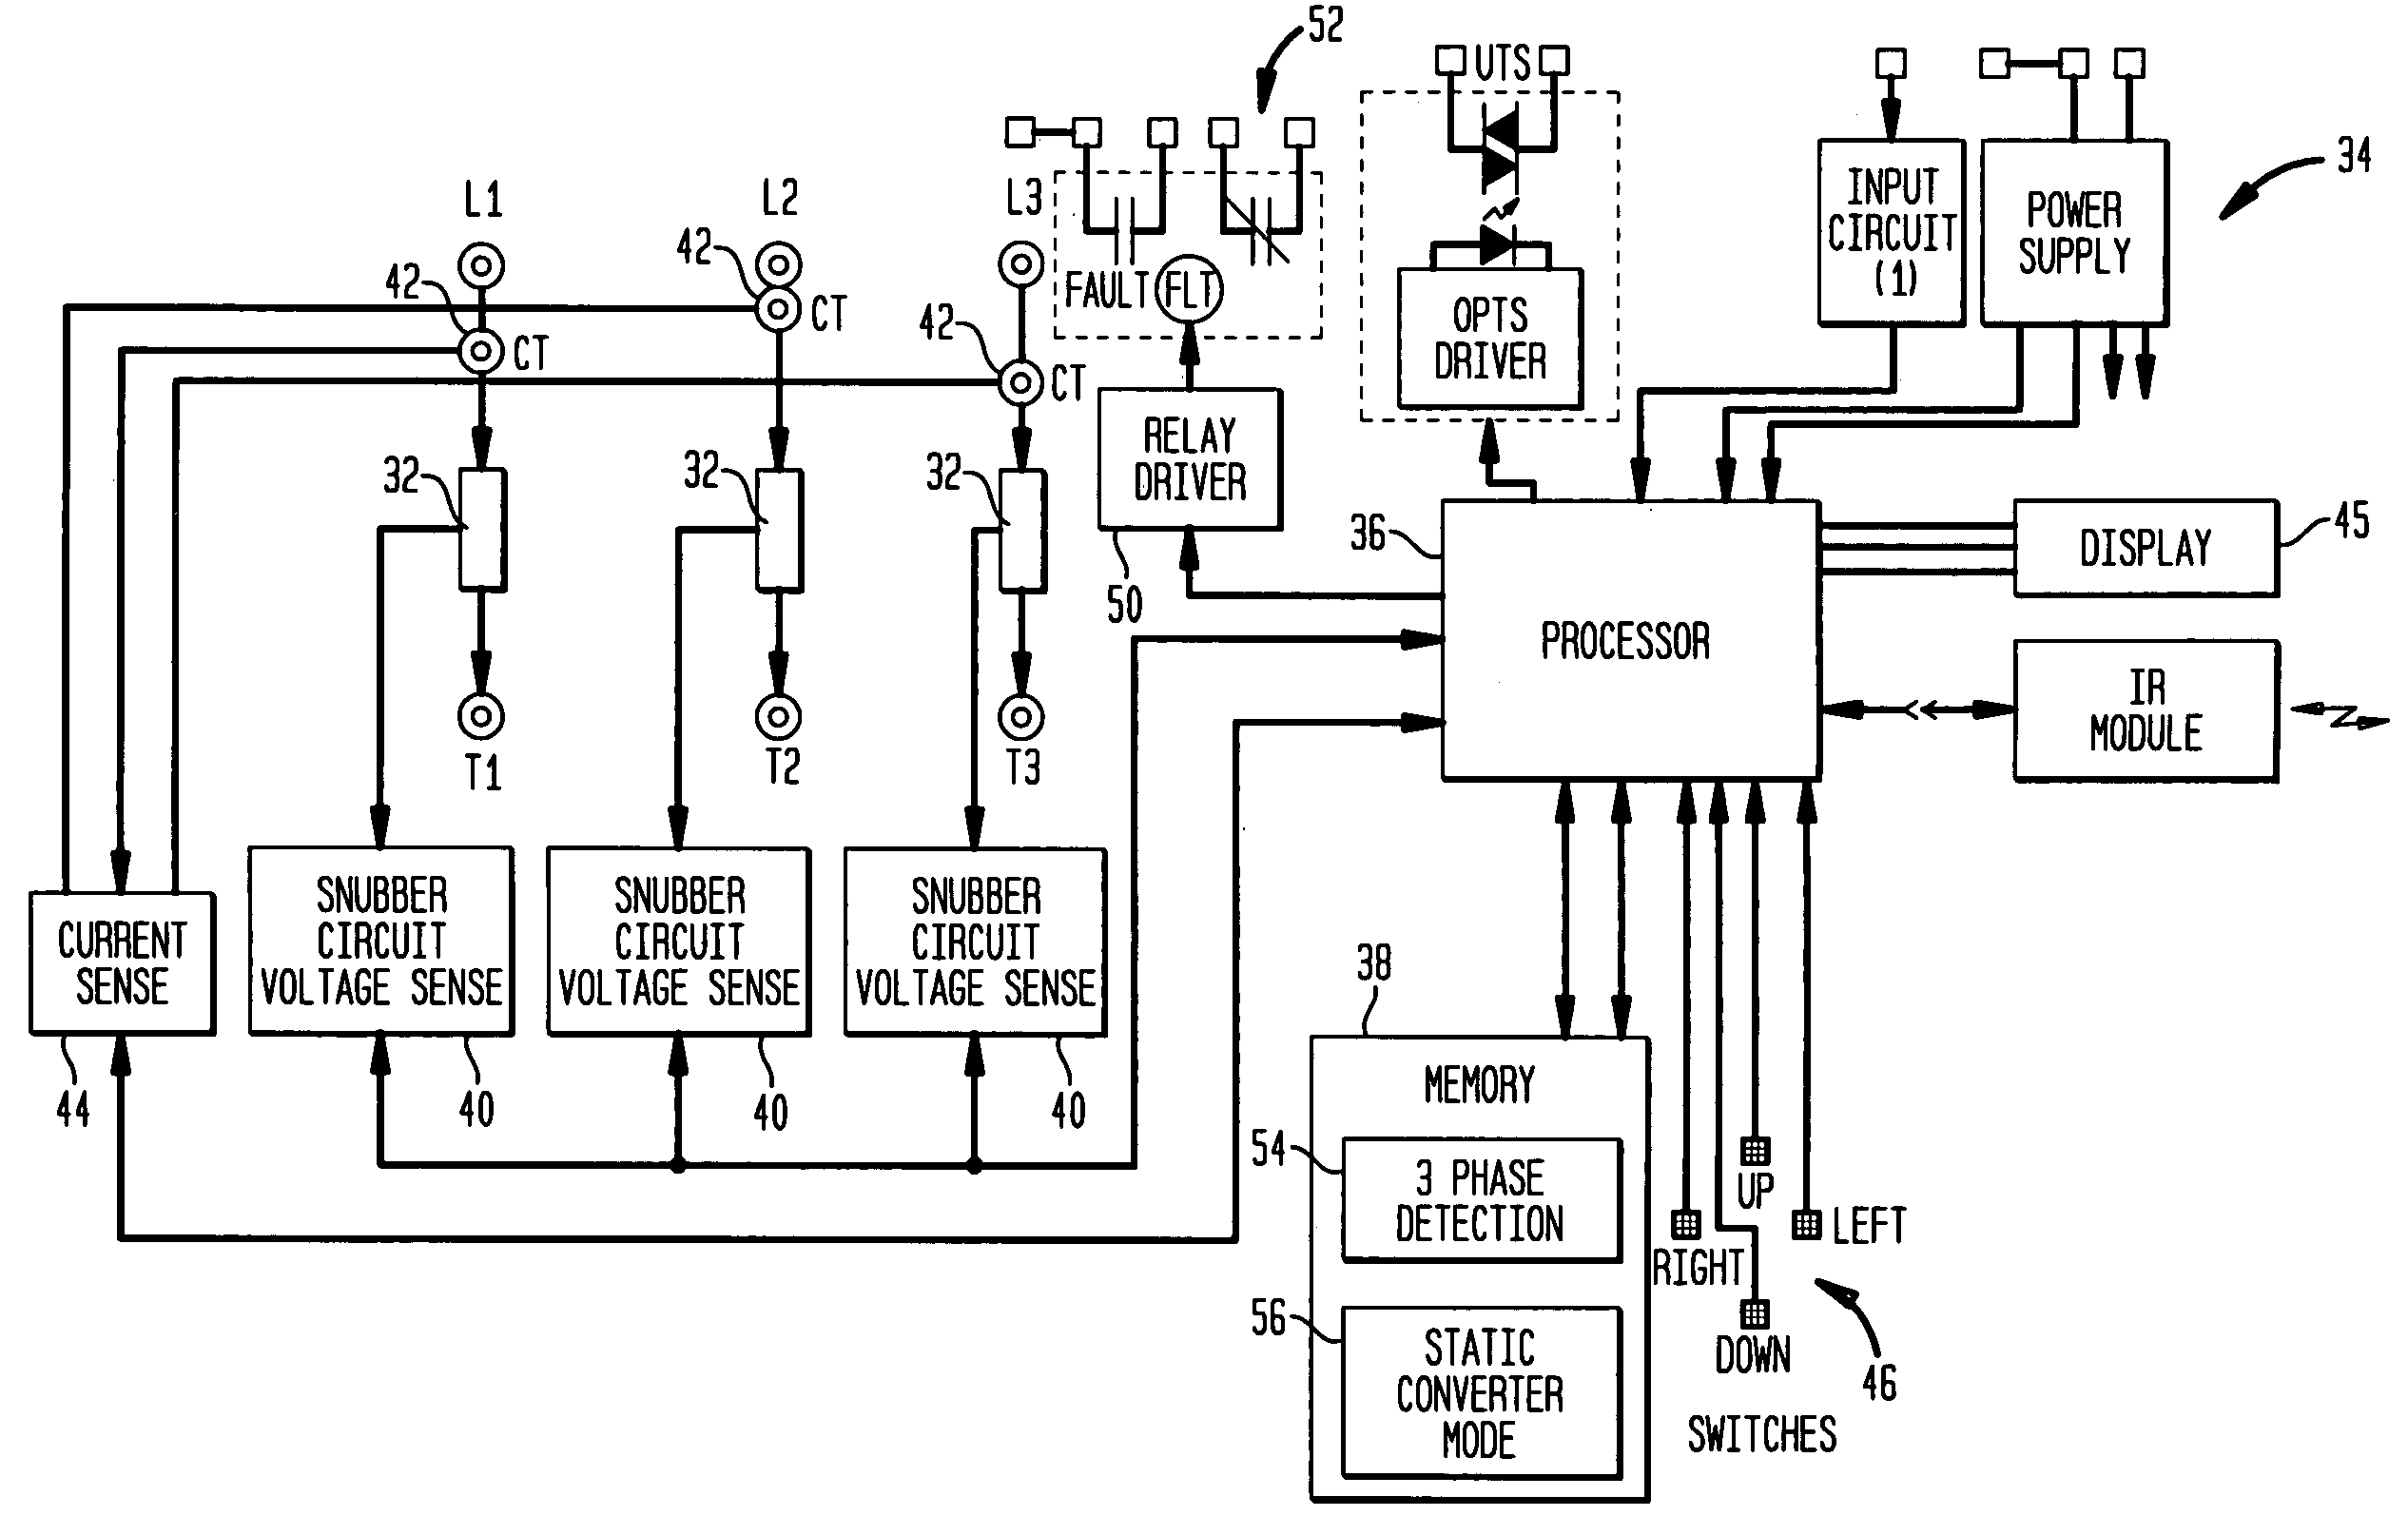 Wiring Diagram Of A Star Delta Starter further Wiring Diagrams Renault Master Wiring Car Diagram Download With Trafic in addition Starters Of Induction Motor And Protection Equipment furthermore US7859217 furthermore Auto Transformer Starter. on wiring diagram of autotransformer starter